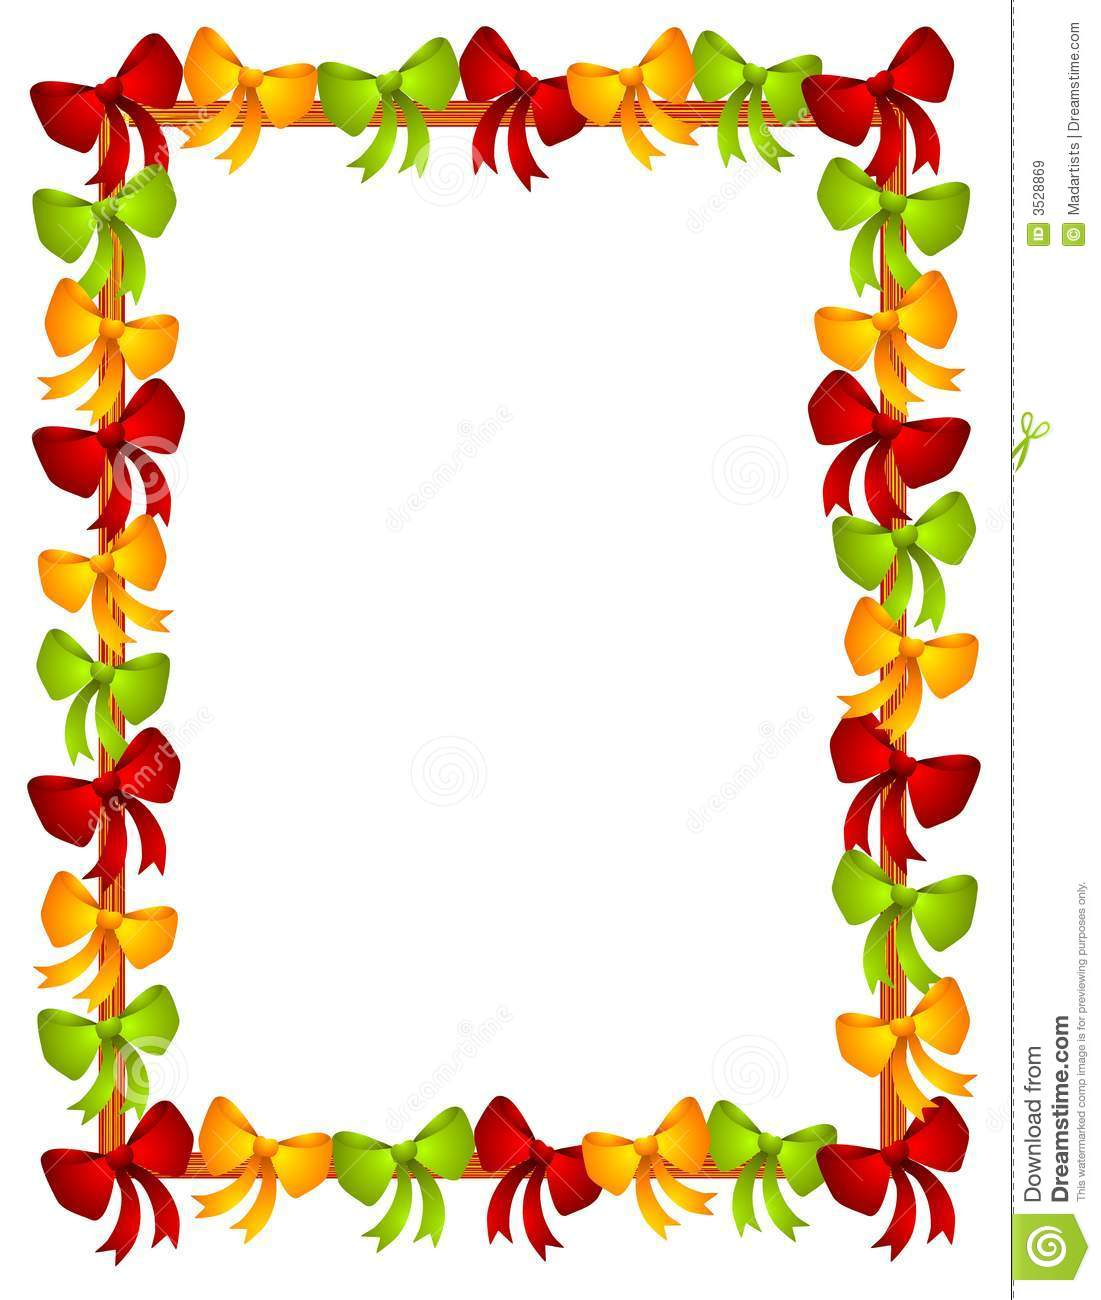 clipart birthday borders and frames ; pictures-of-borders-6